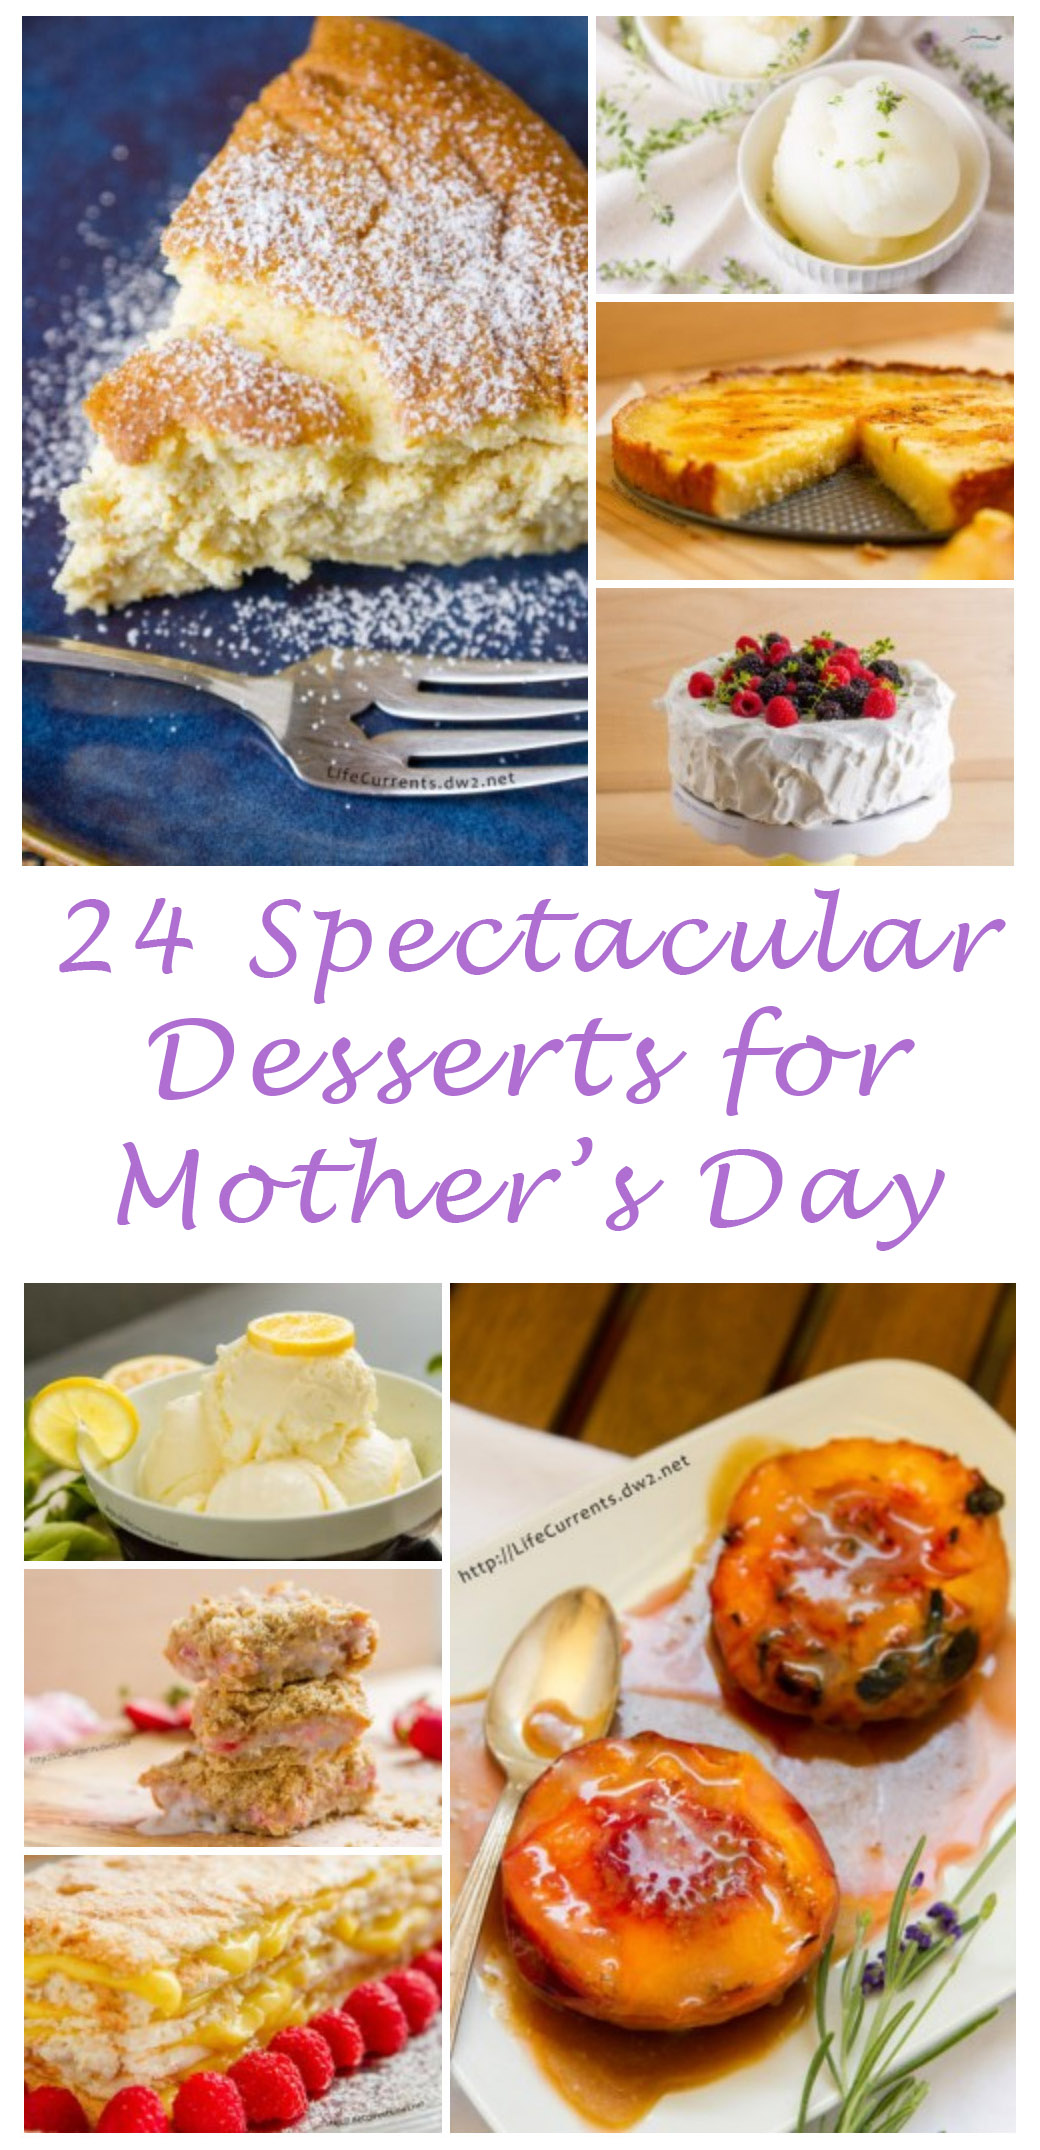 Mother's Day Desserts - treat mom like she's the sweetest, most spectacular people there is. Because, well, that's who she is!